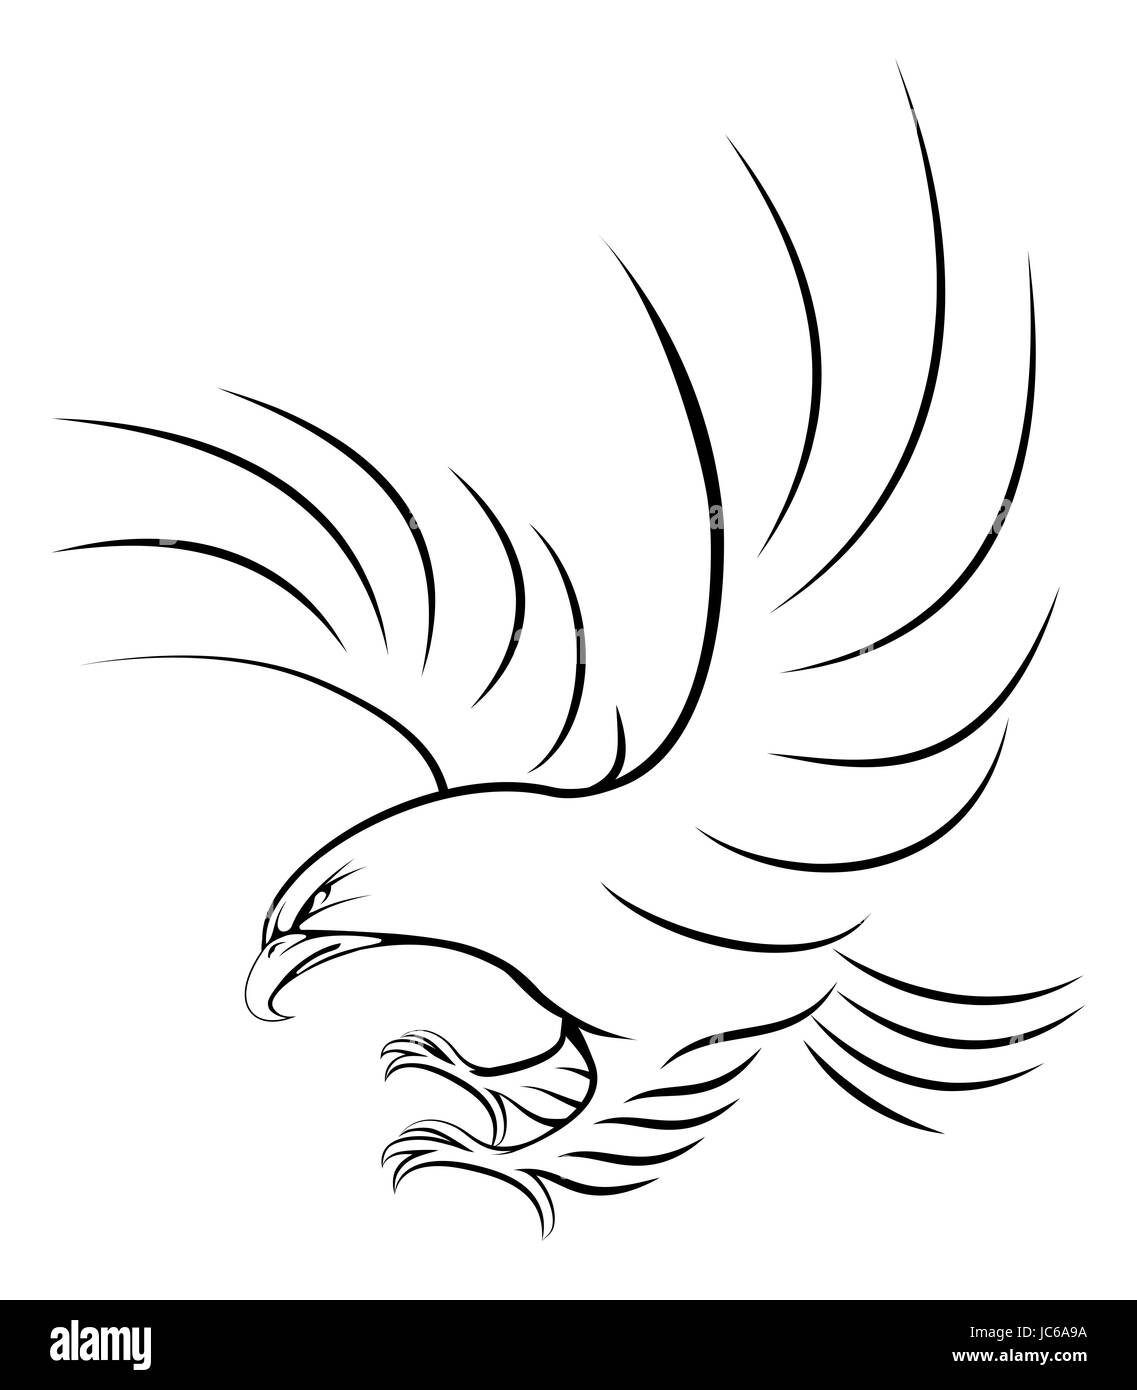 Stylised eagle illustration of an eagle swooping in for the kill - Stock Image